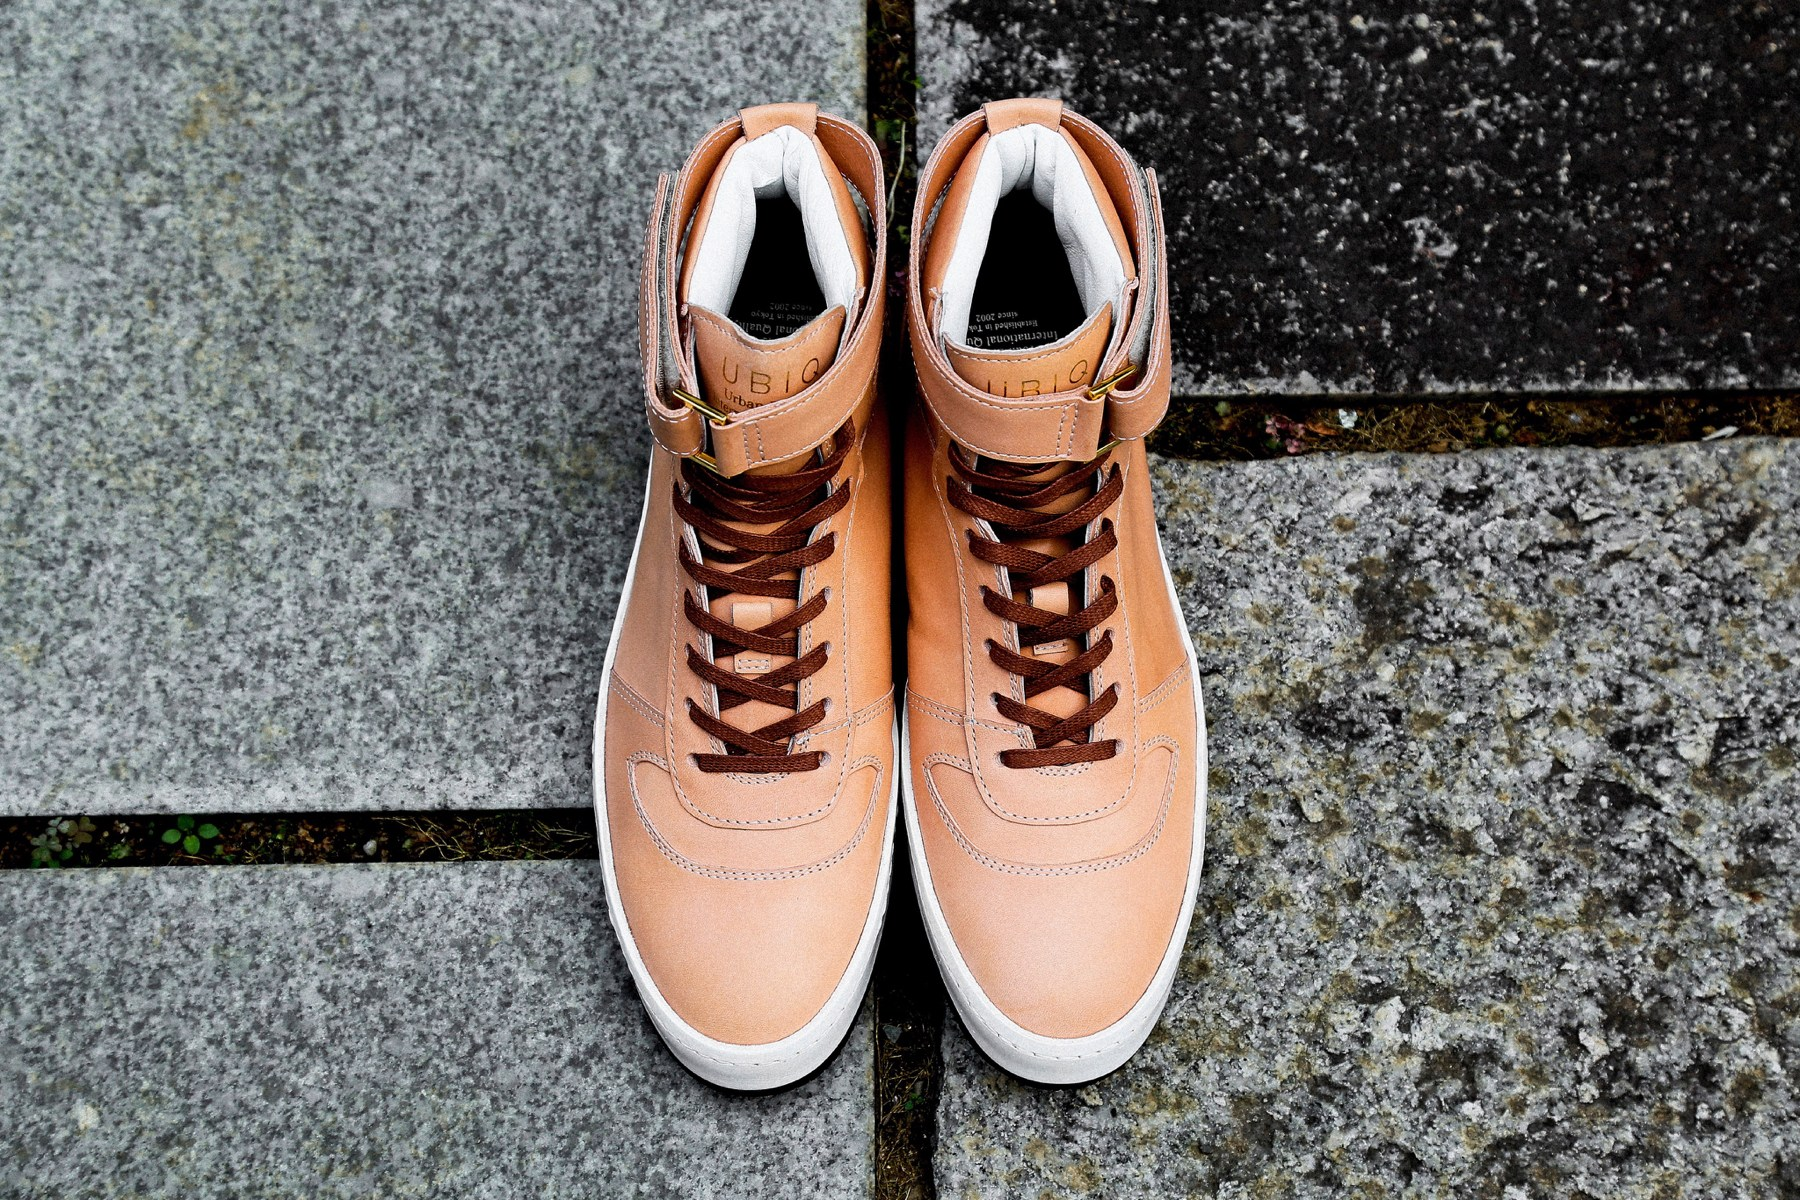 UBIQ's MADE in JAPAN Series Introduces the VAGET J